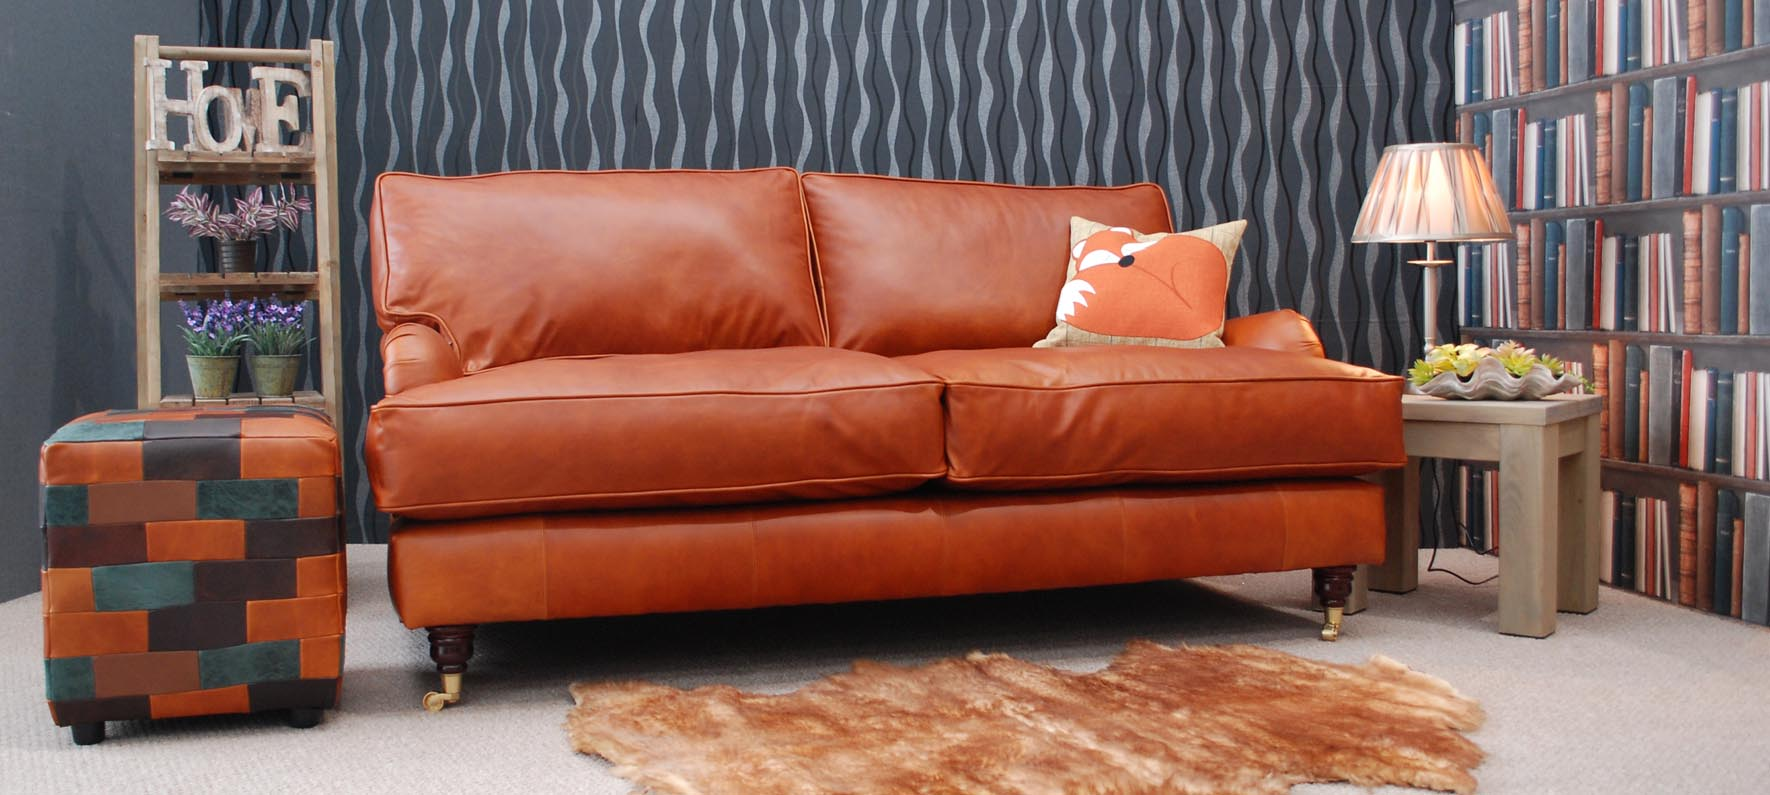 sofa manufacturer uk sectional sofas charlotte nc leather shop full grain british made vintage